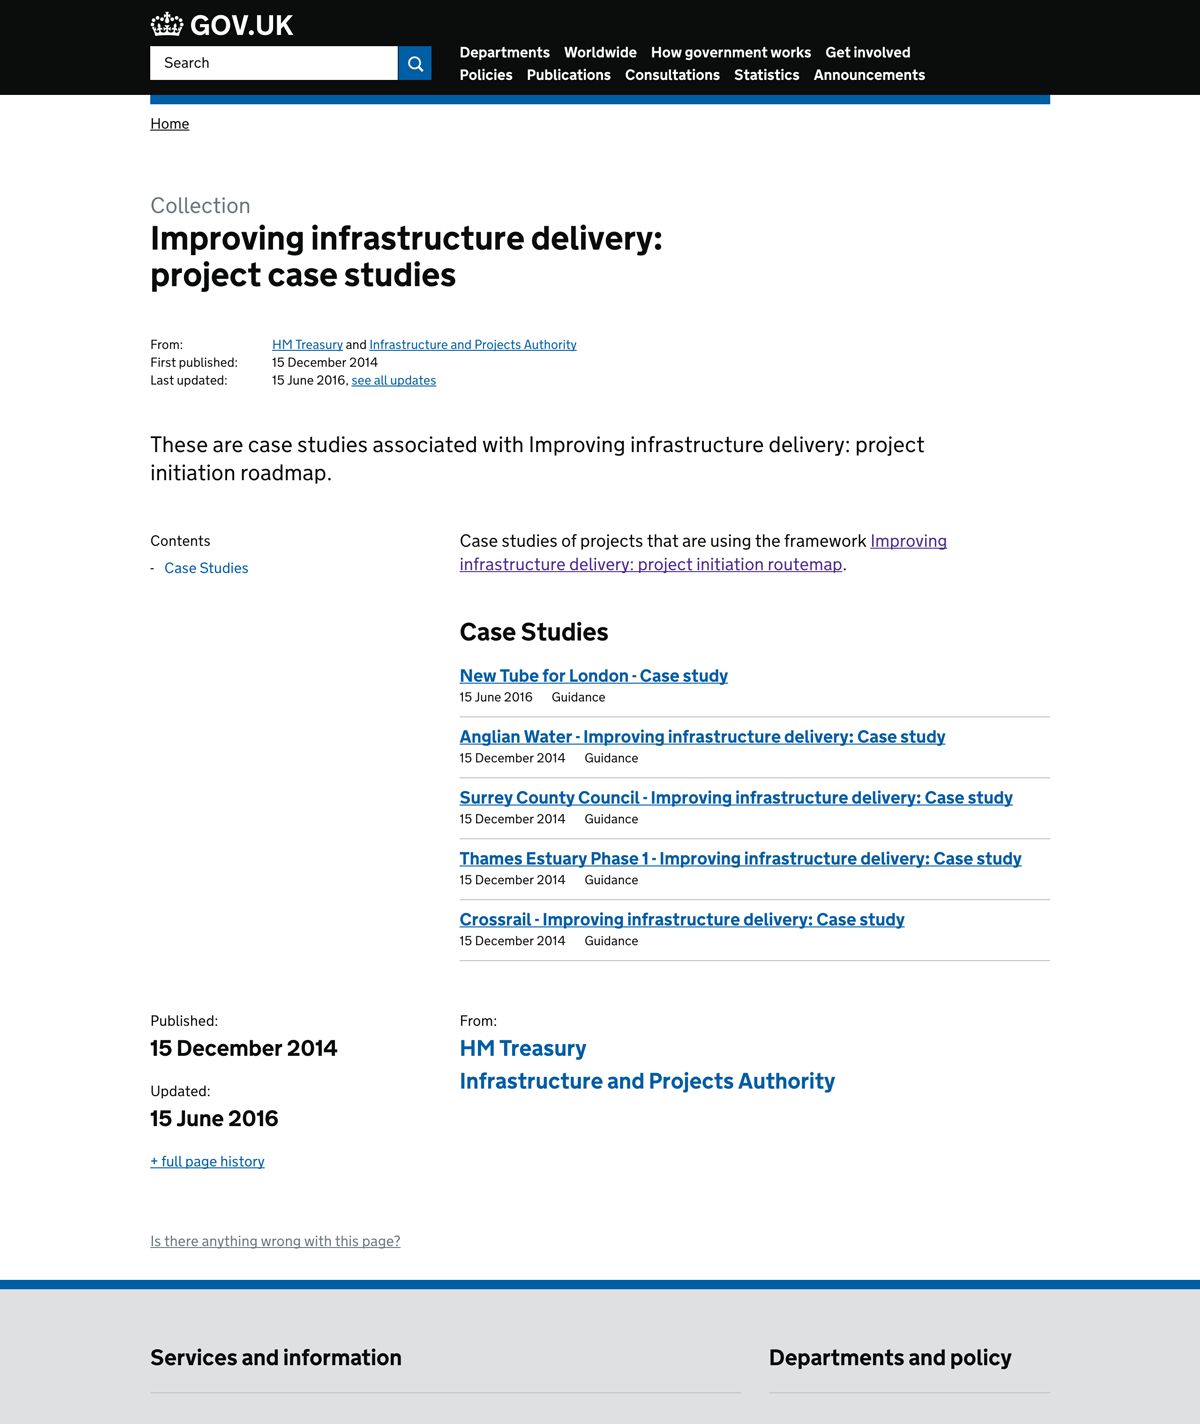 Improving infrastructure delivery: project case studies